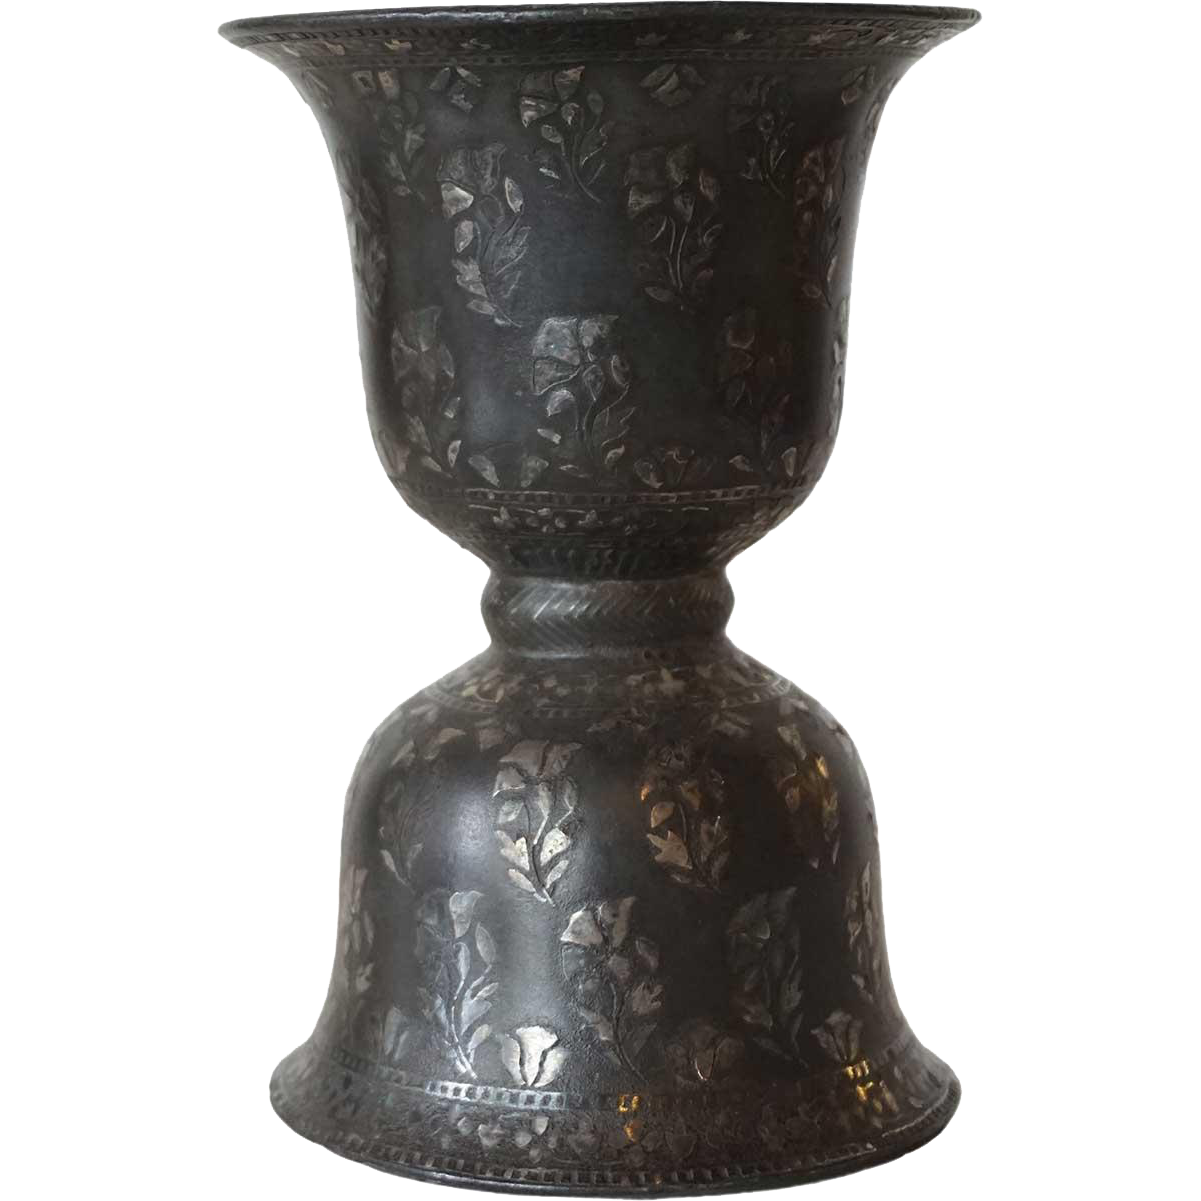 Indian Mughal Silver Inlaid Bidri Bell-Shaped Spittoon (Peekdaan/Thookadaan)